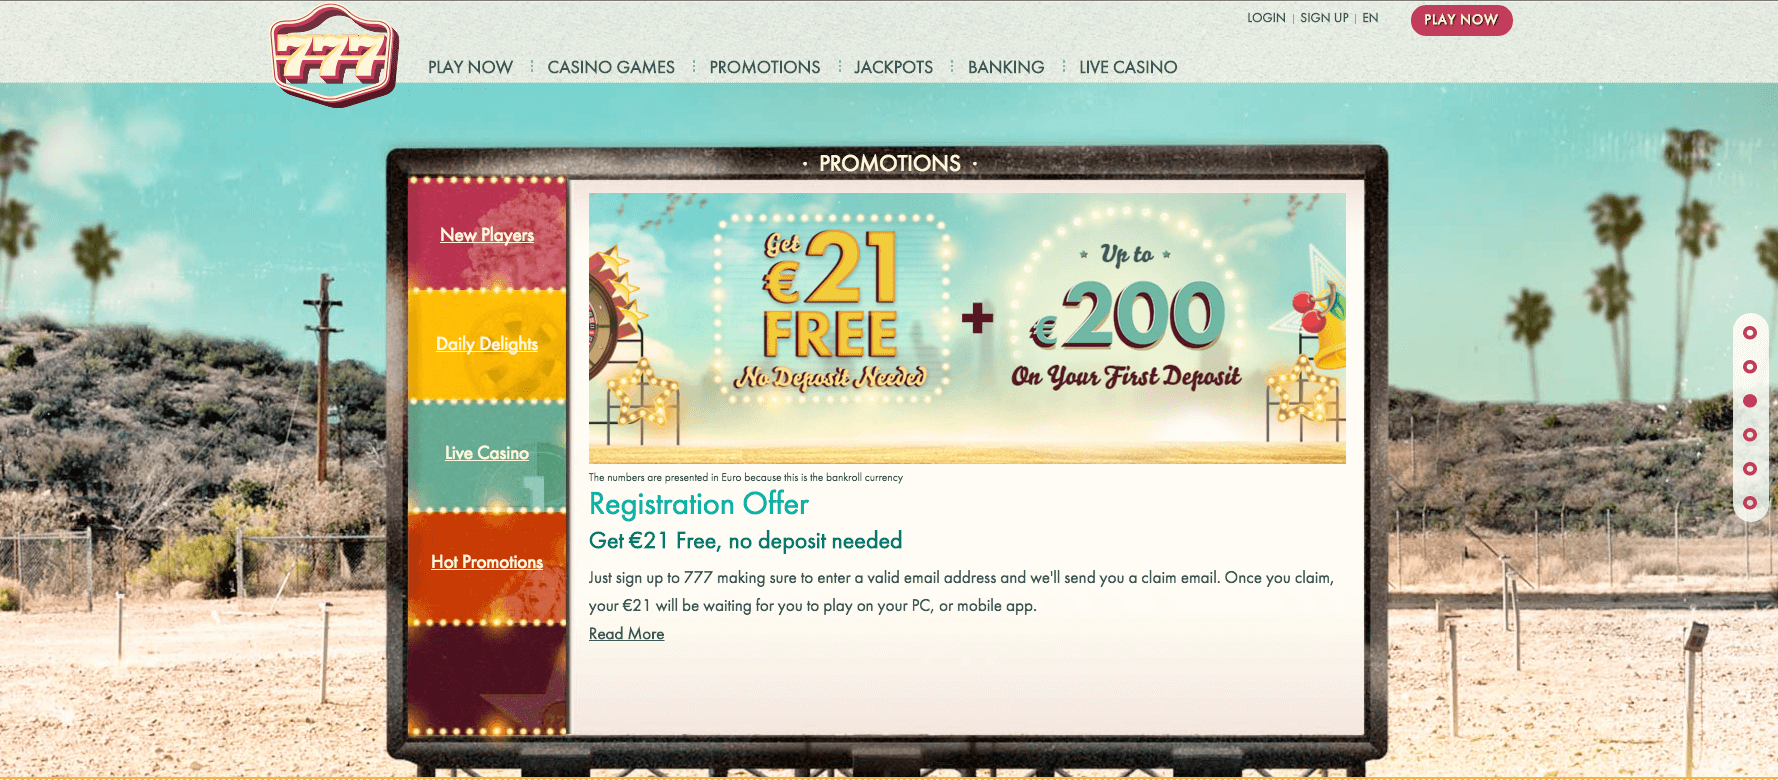 777 online casino UK